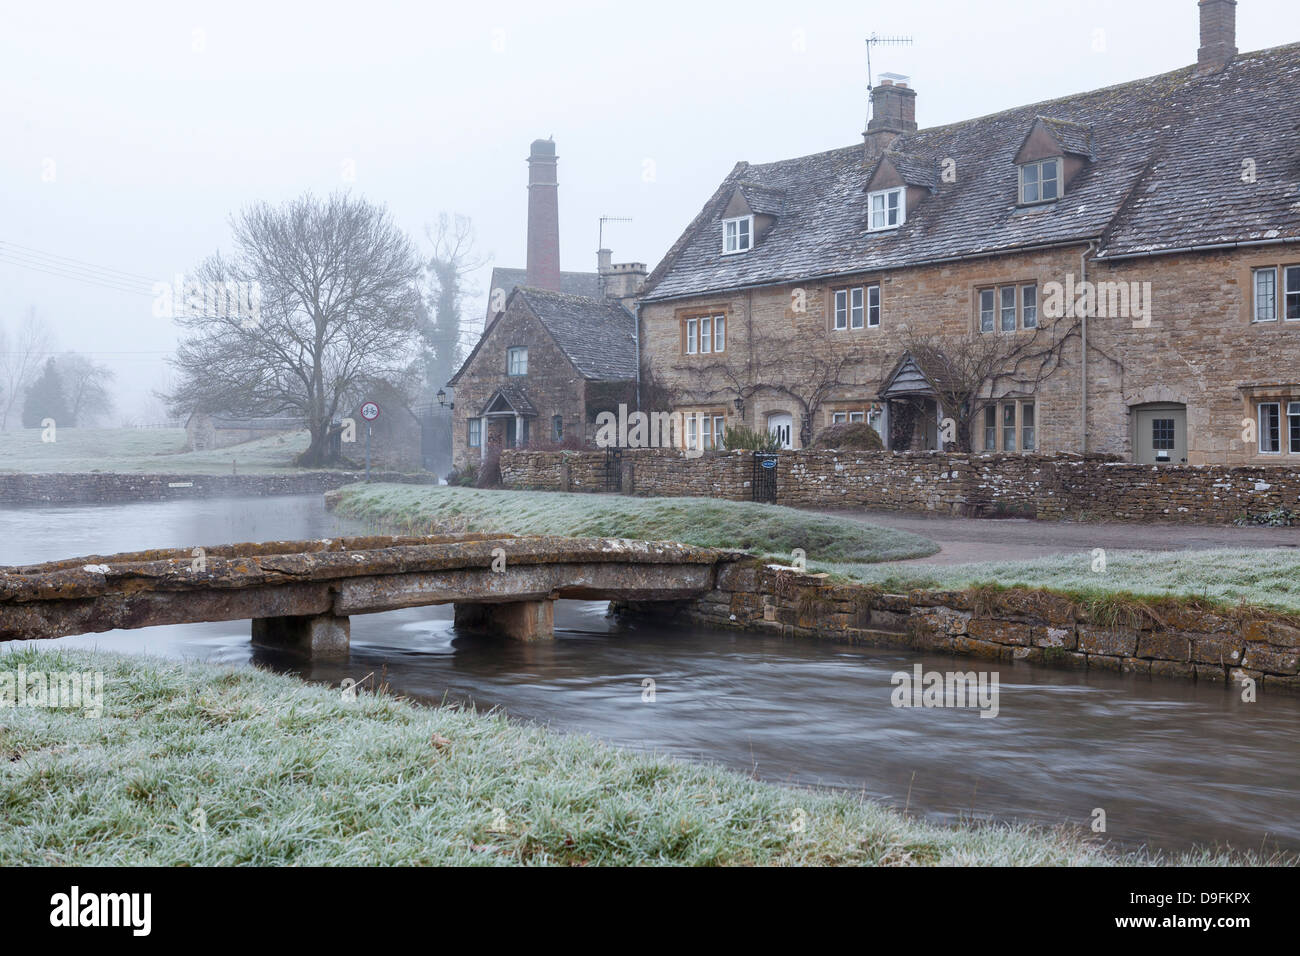 A misty and frosty winters morning, Lower Slaughter, Cotswolds, Gloucestershire, England, UK - Stock Image